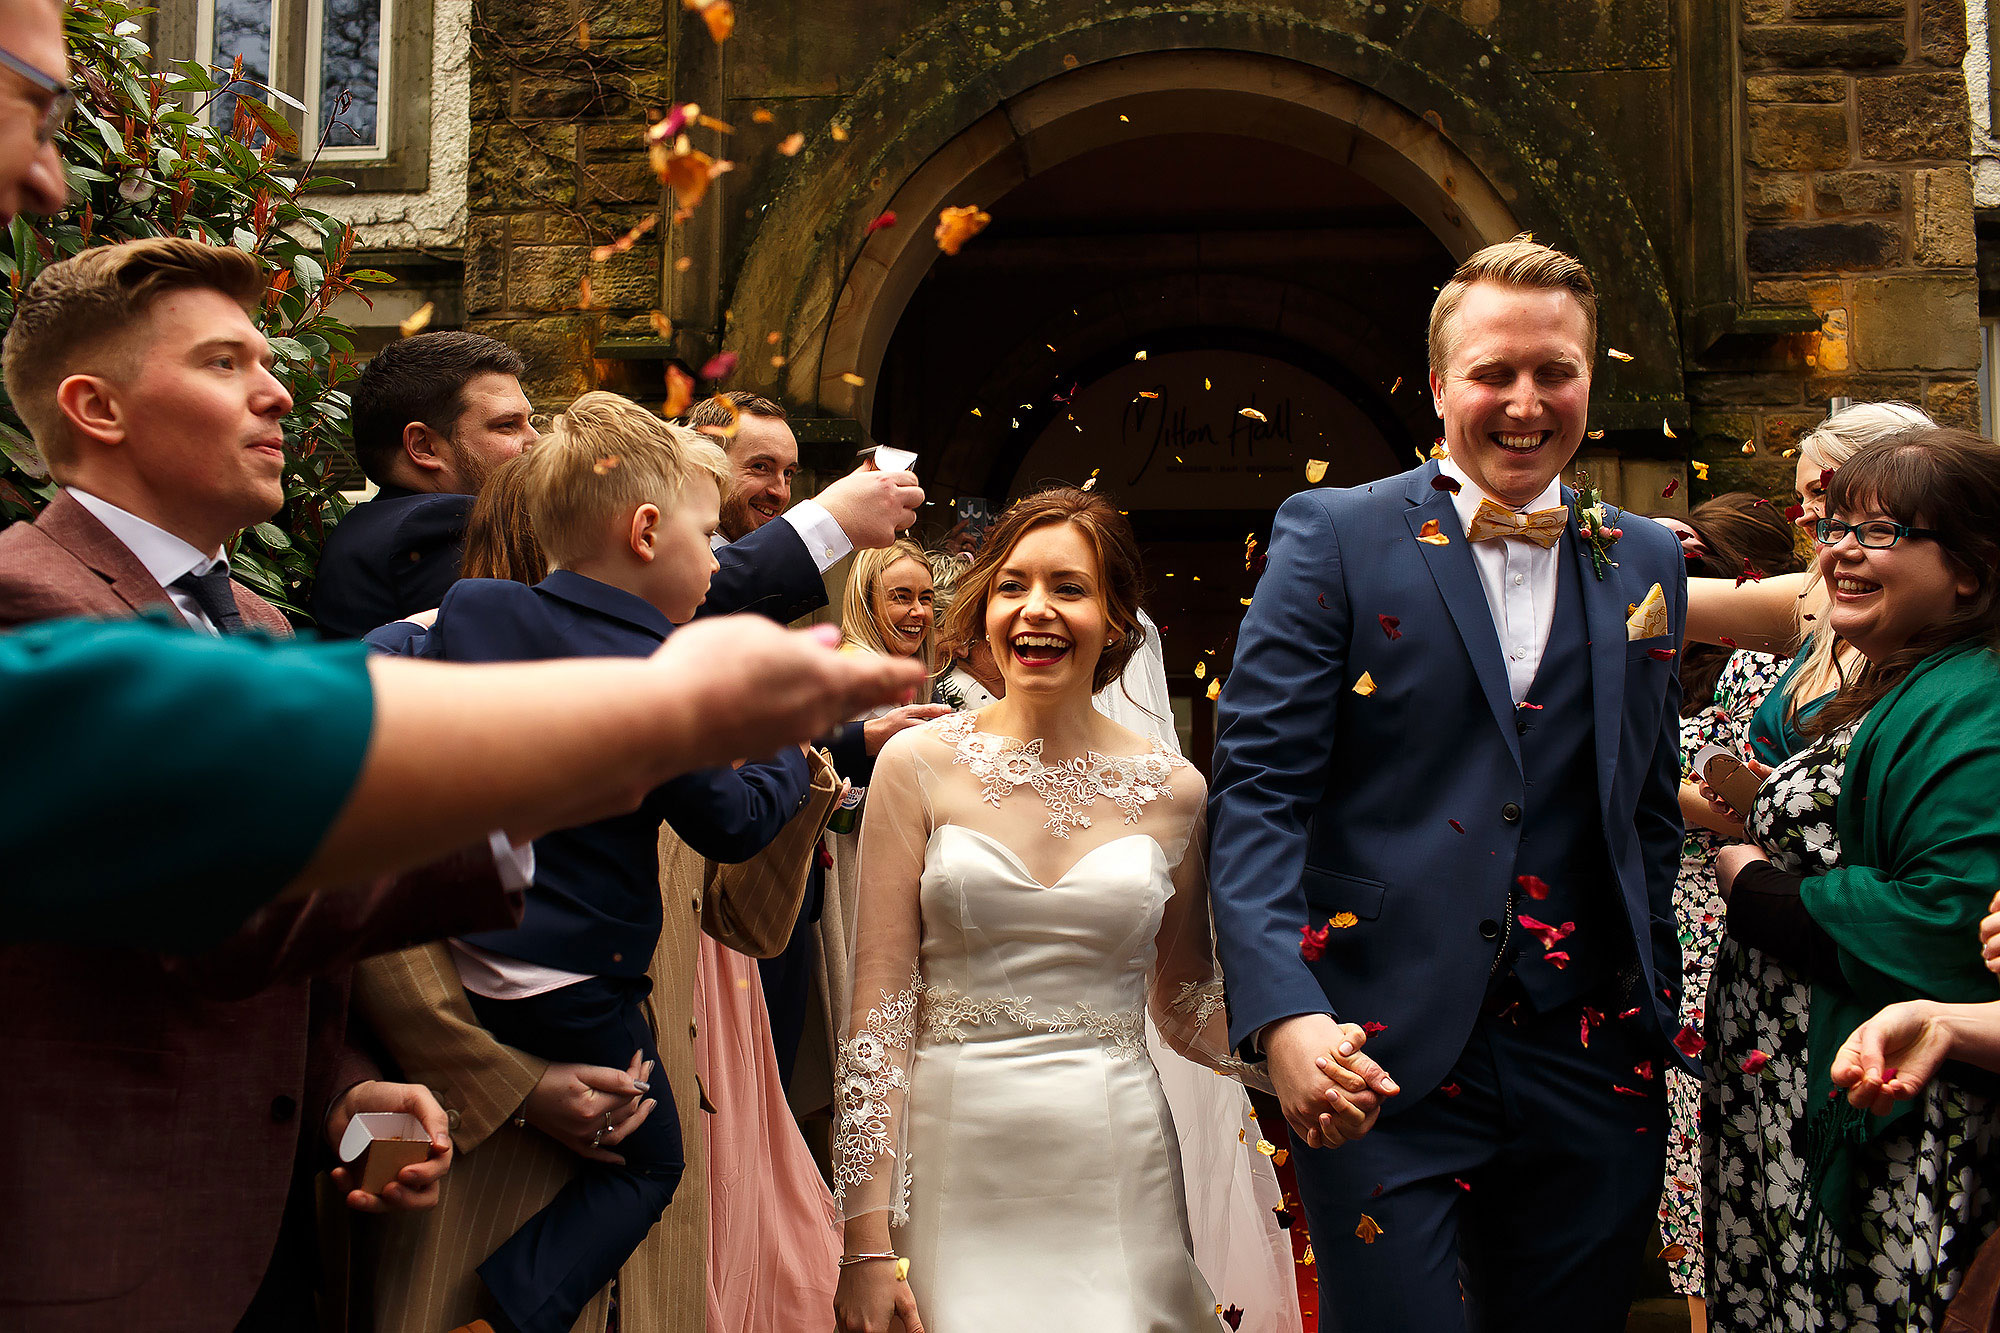 Bride and groom walking outside the wedding reception of Mitton Hall as the wedding guests throw confetti | Mitton Hall wedding photographs by Toni Darcy Photography